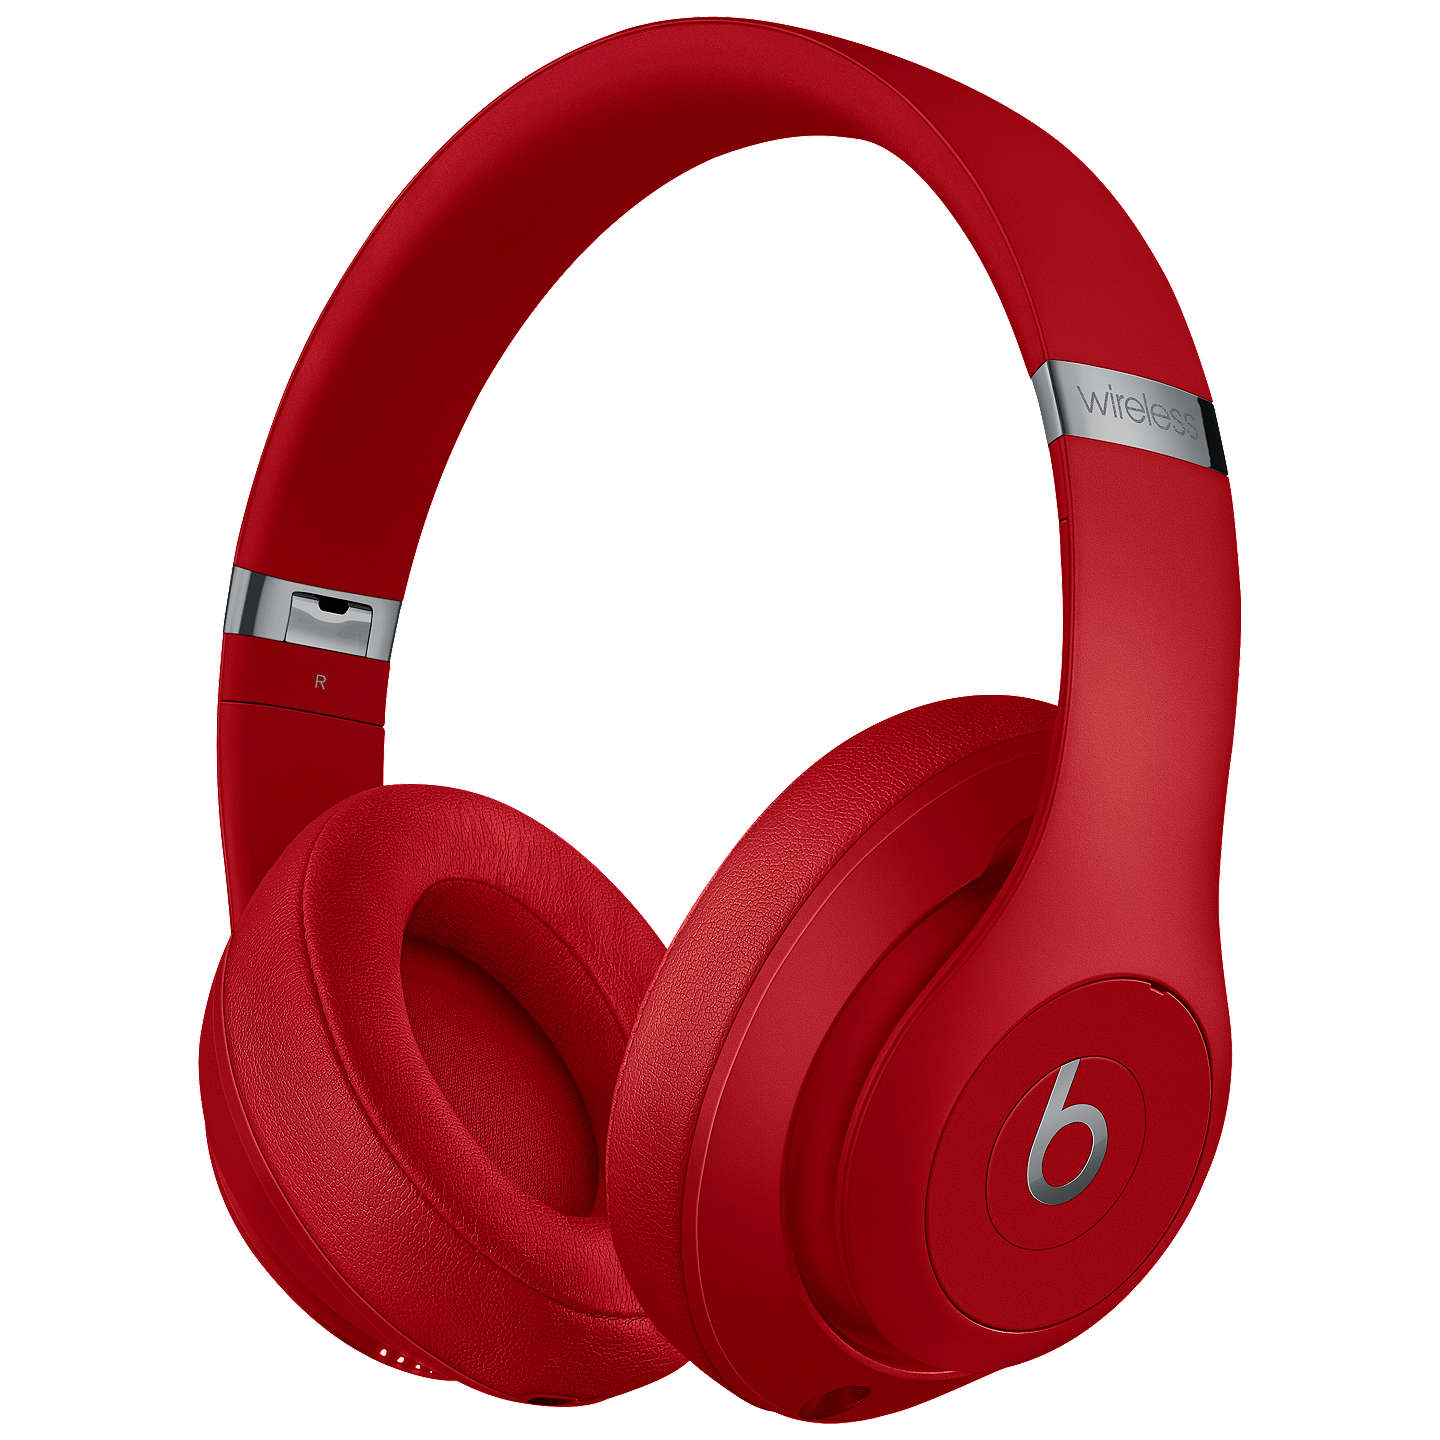 BuyBeats Studio³  Wireless Bluetooth Over-Ear Headphones with Pure Adaptive Noise Cancelling & Mic/Remote, Red Online at johnlewis.com